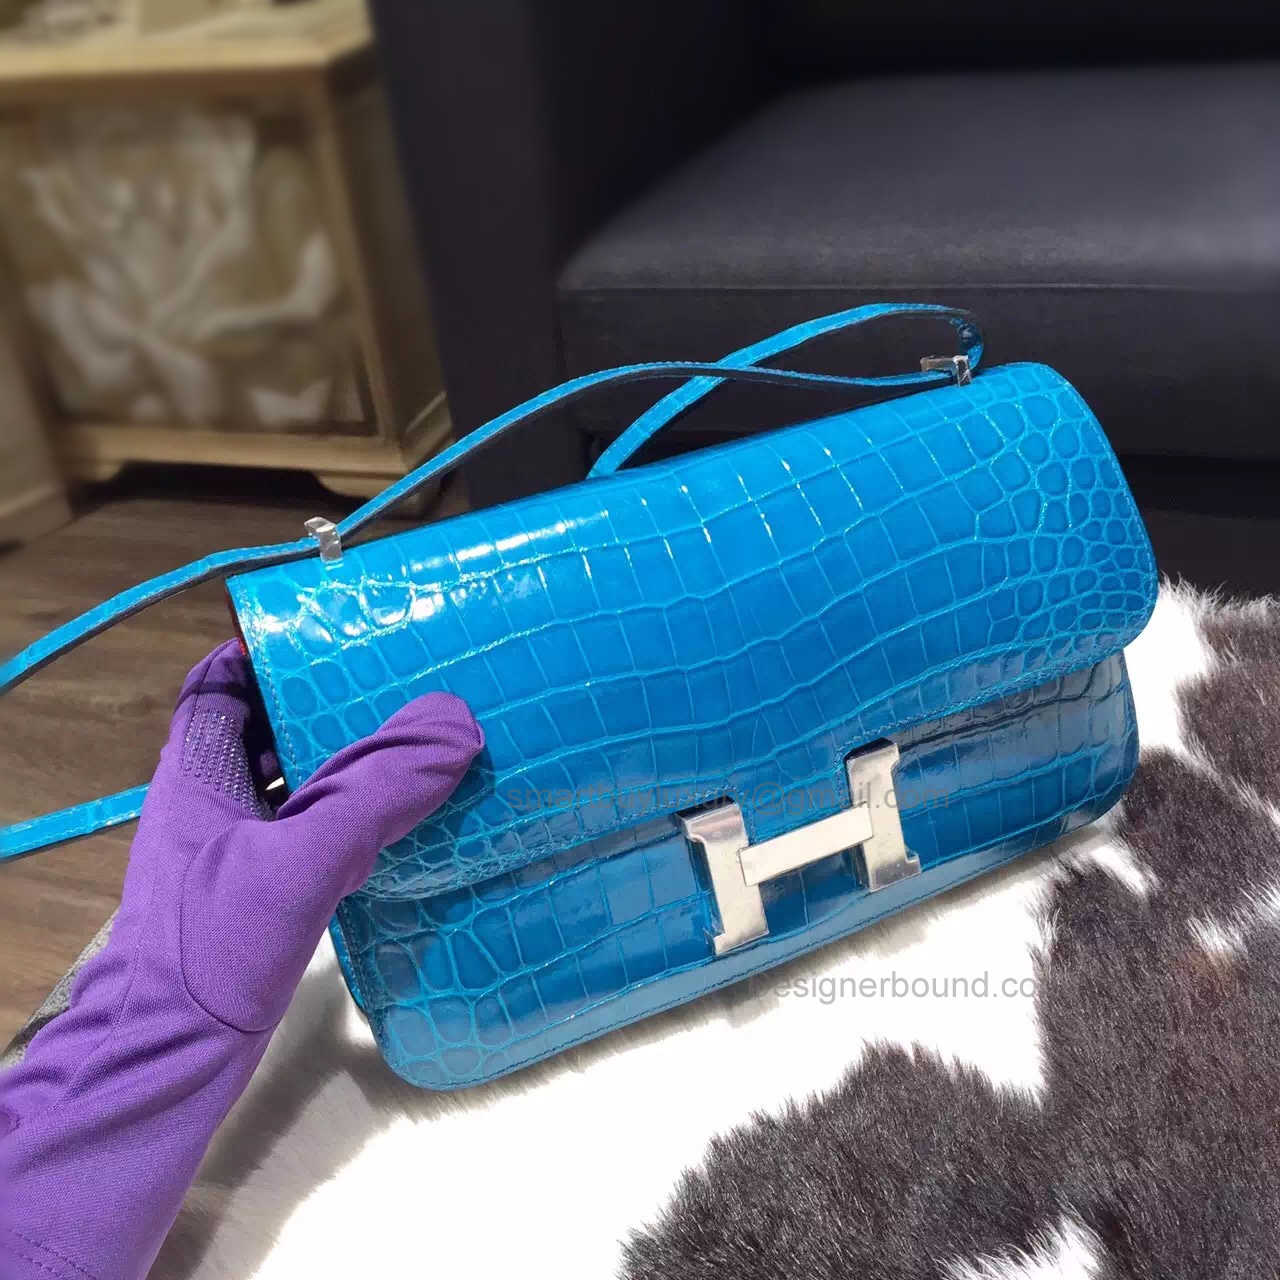 Hermes Constance Elan 25 Bag in 7w Blue Izmir Shining Niloticus Crocodile PHW